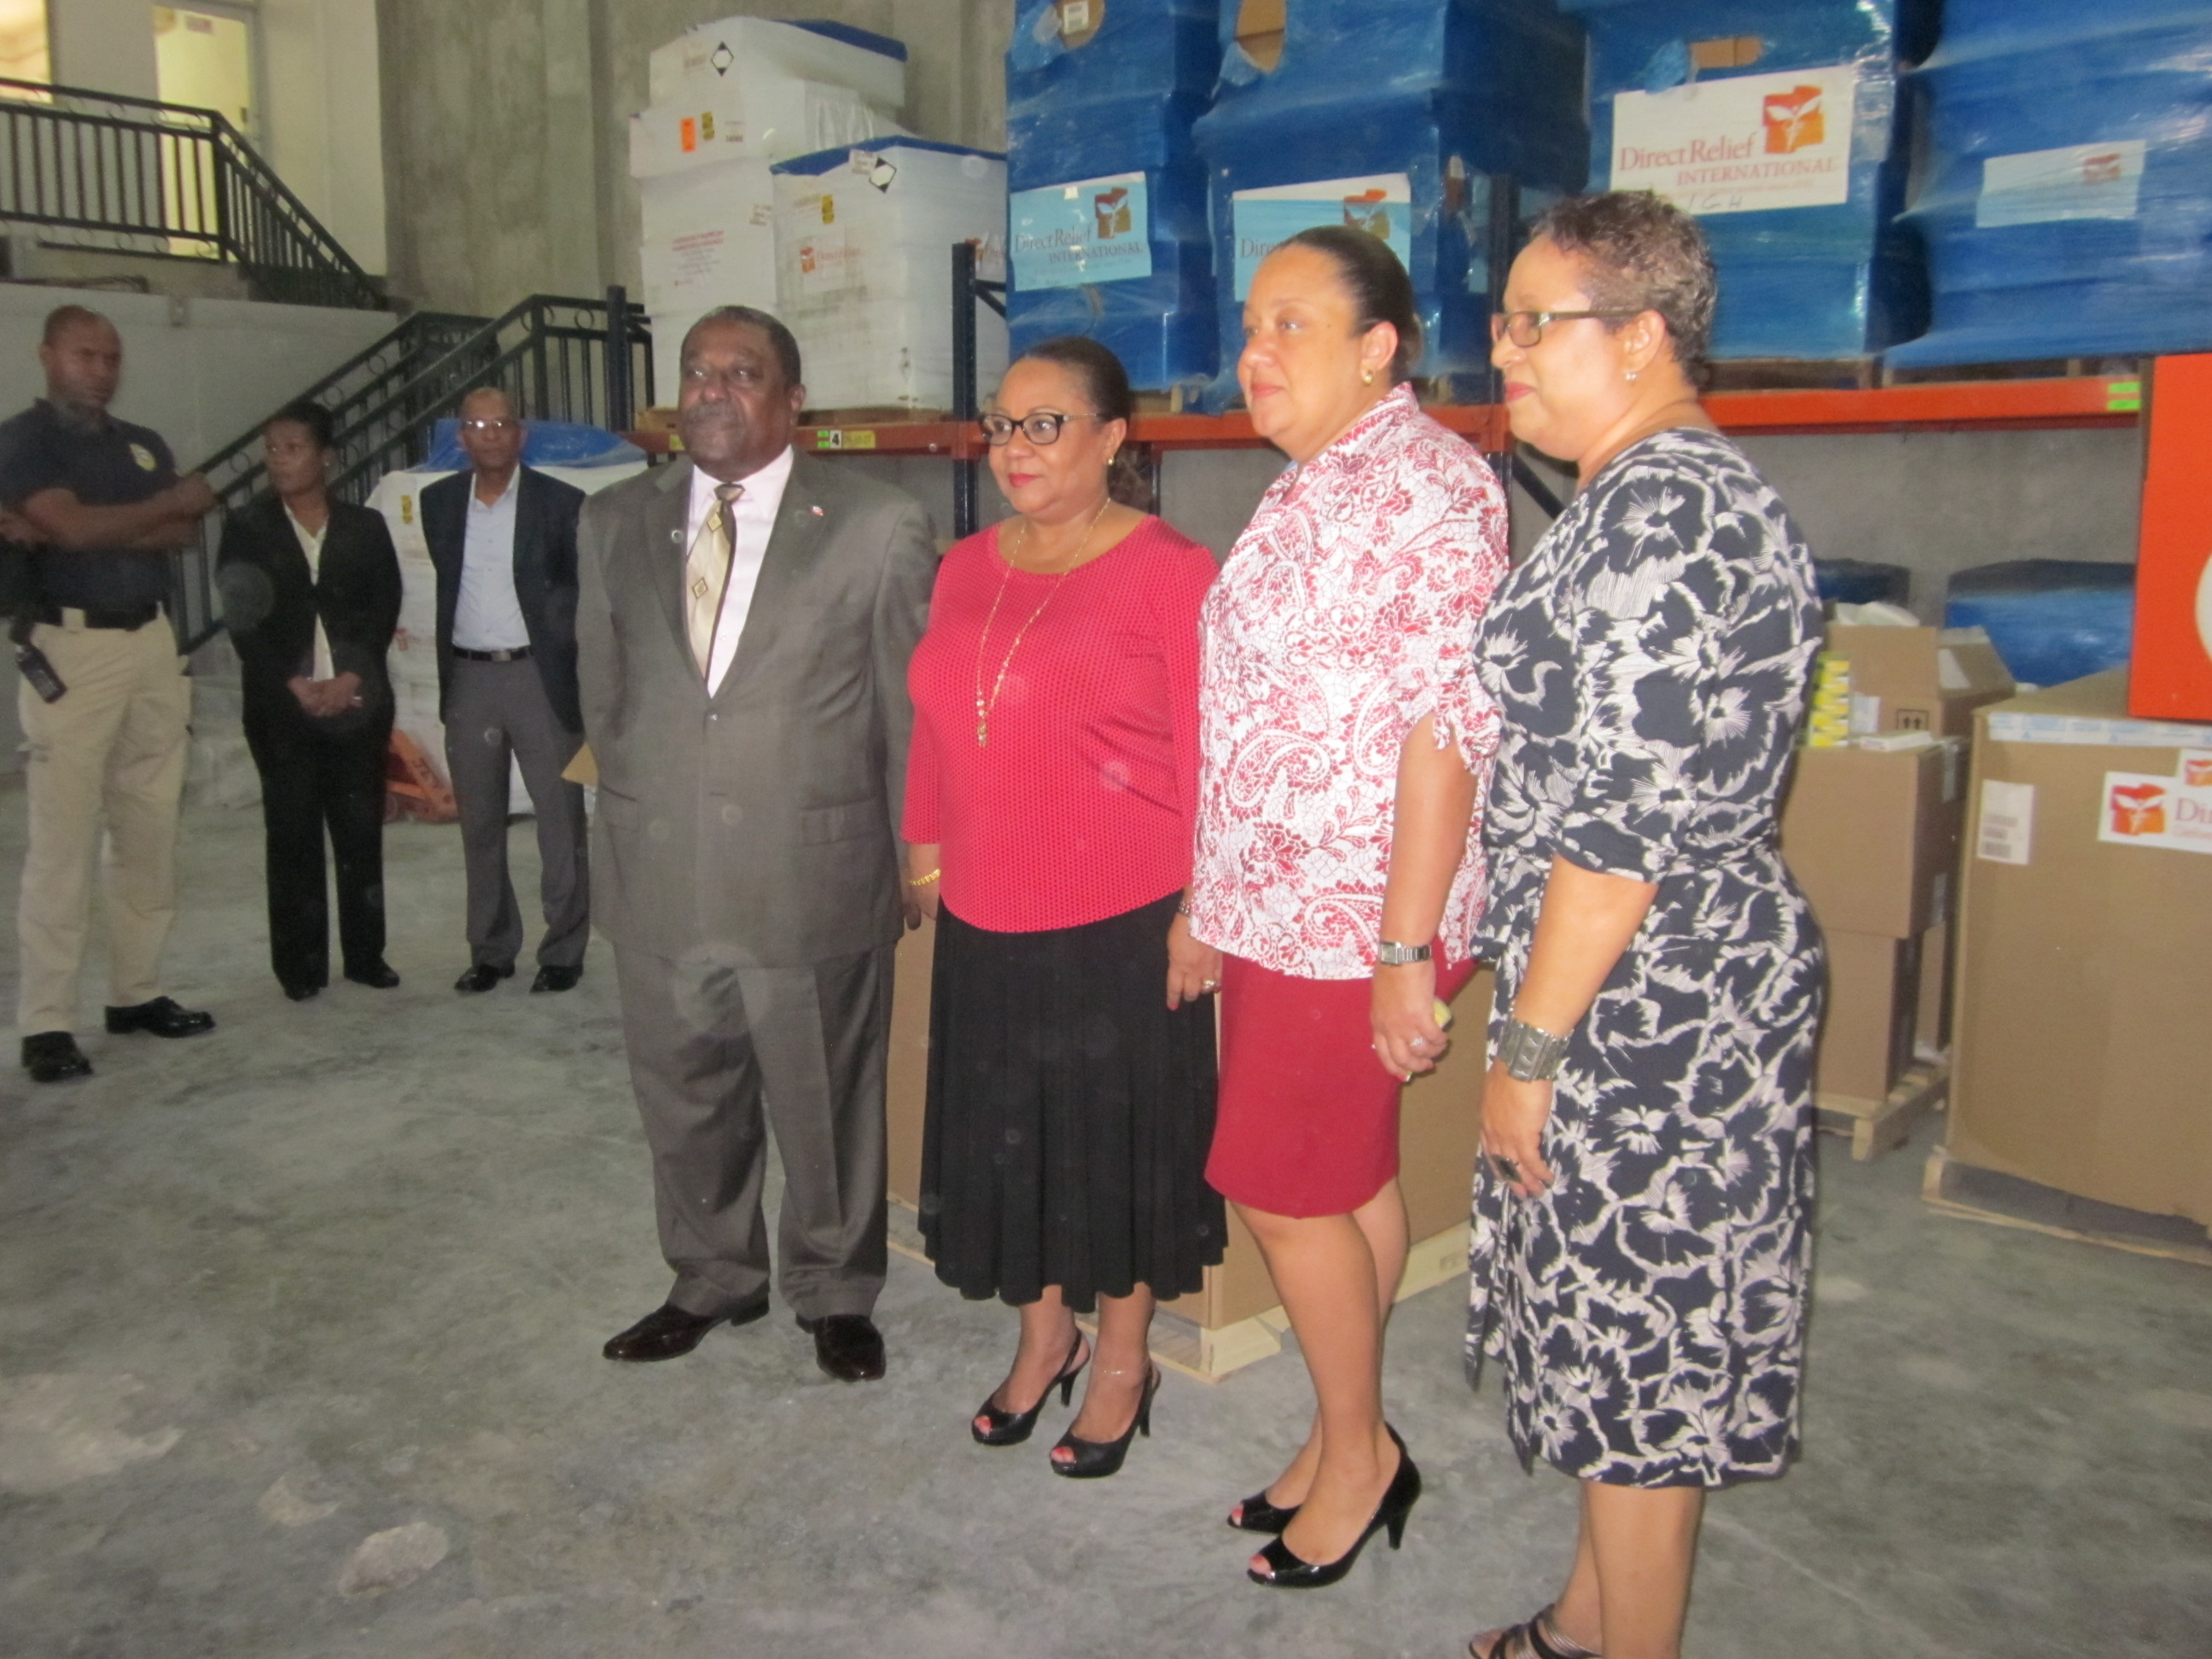 Haitian First Lady Sophia Martelly (second from left) and Health Minister Florence Duperval Guillaume (second from right) today announced the distribution of chikungunya treatment kits at Direct Relief's warehouse in Haiti.